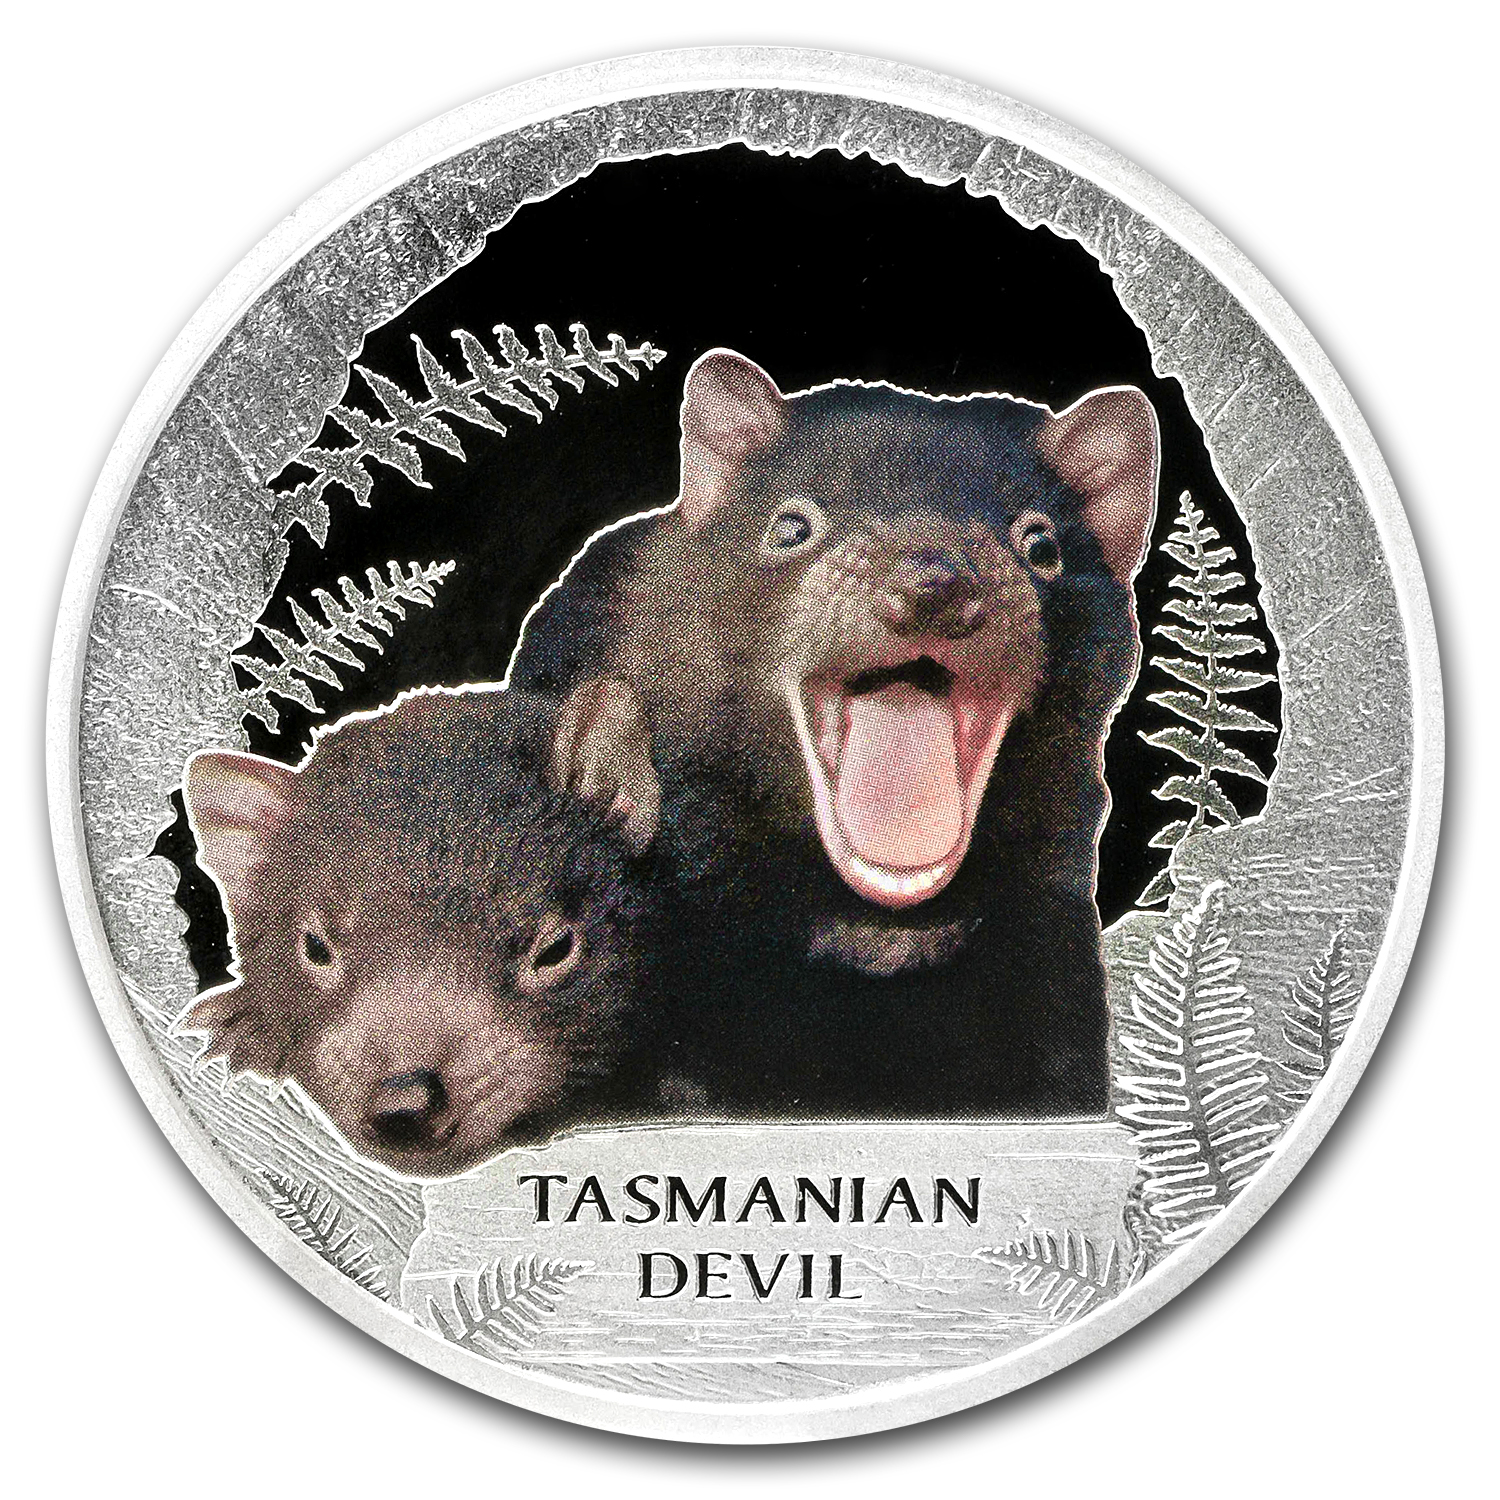 2013 Tuvalu 1 oz Silver Tasmanian Devil Proof